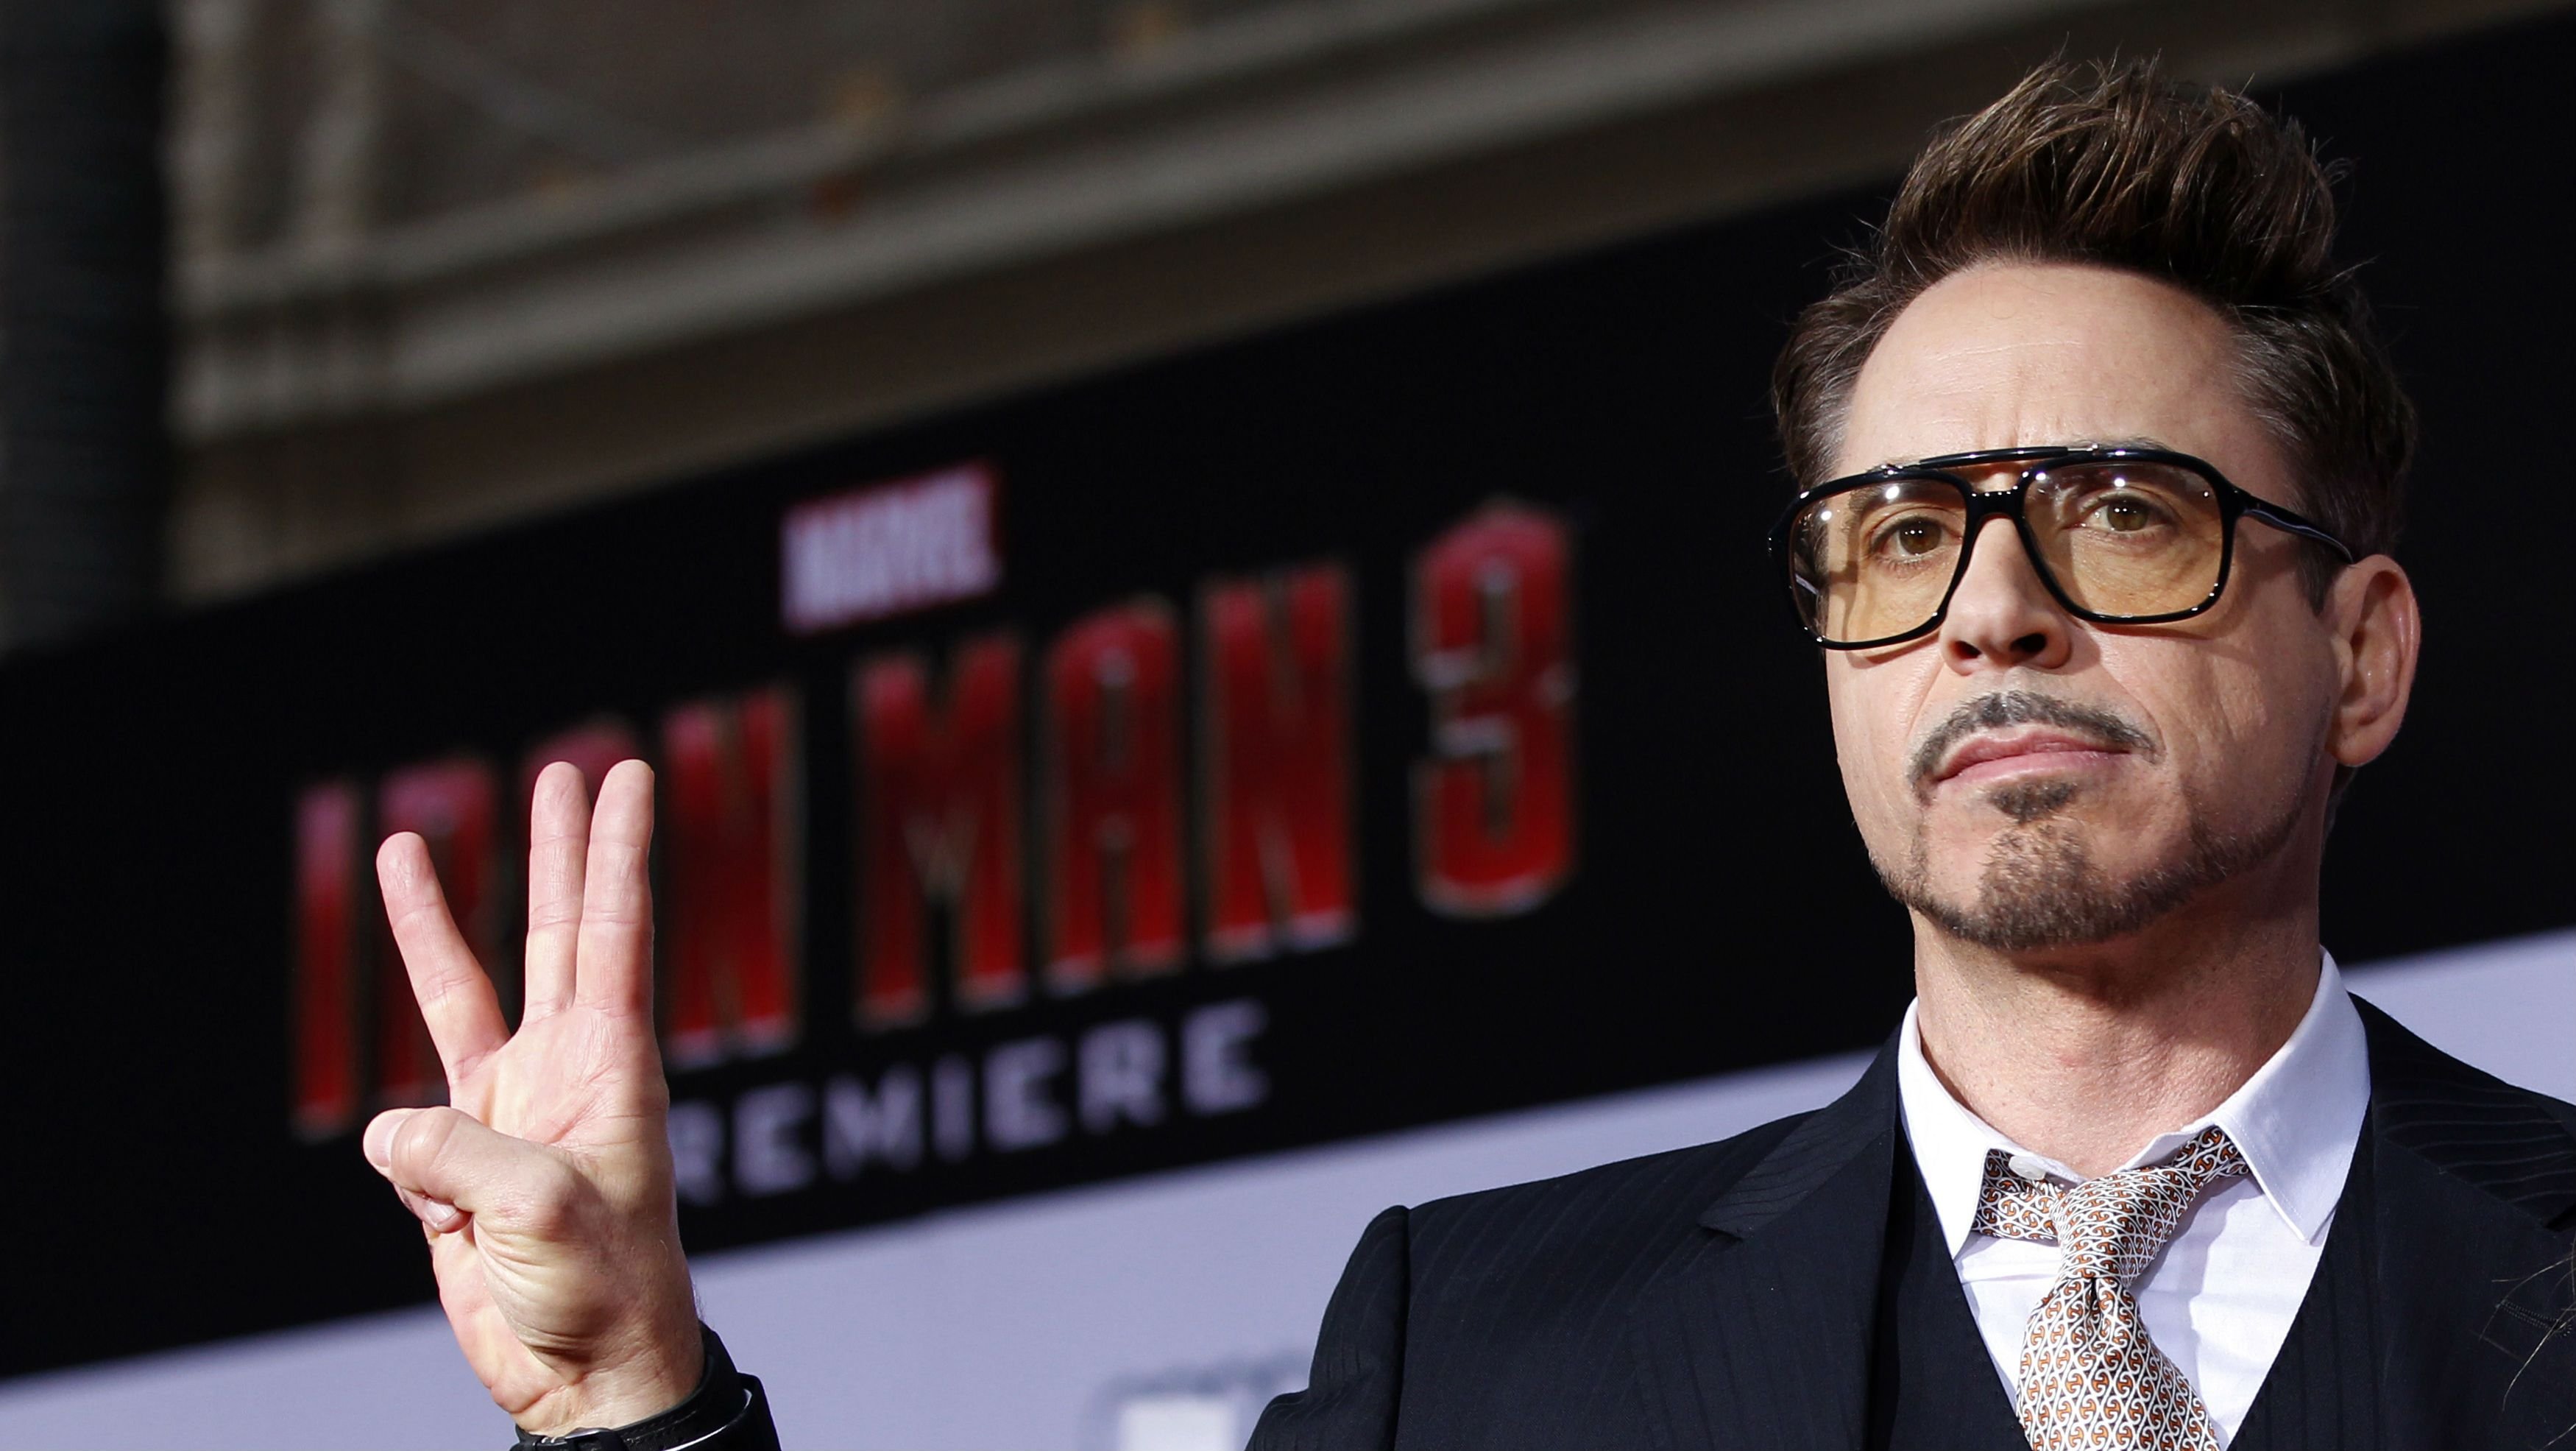 """Cast member Robert Downey Jr. poses at the premiere of """"Iron Man 3"""" at El Capitan theatre in Hollywood, California April 24, 2013. The movie opens in the U.S. on May 3. REUTERS/Mario Anzuoni"""